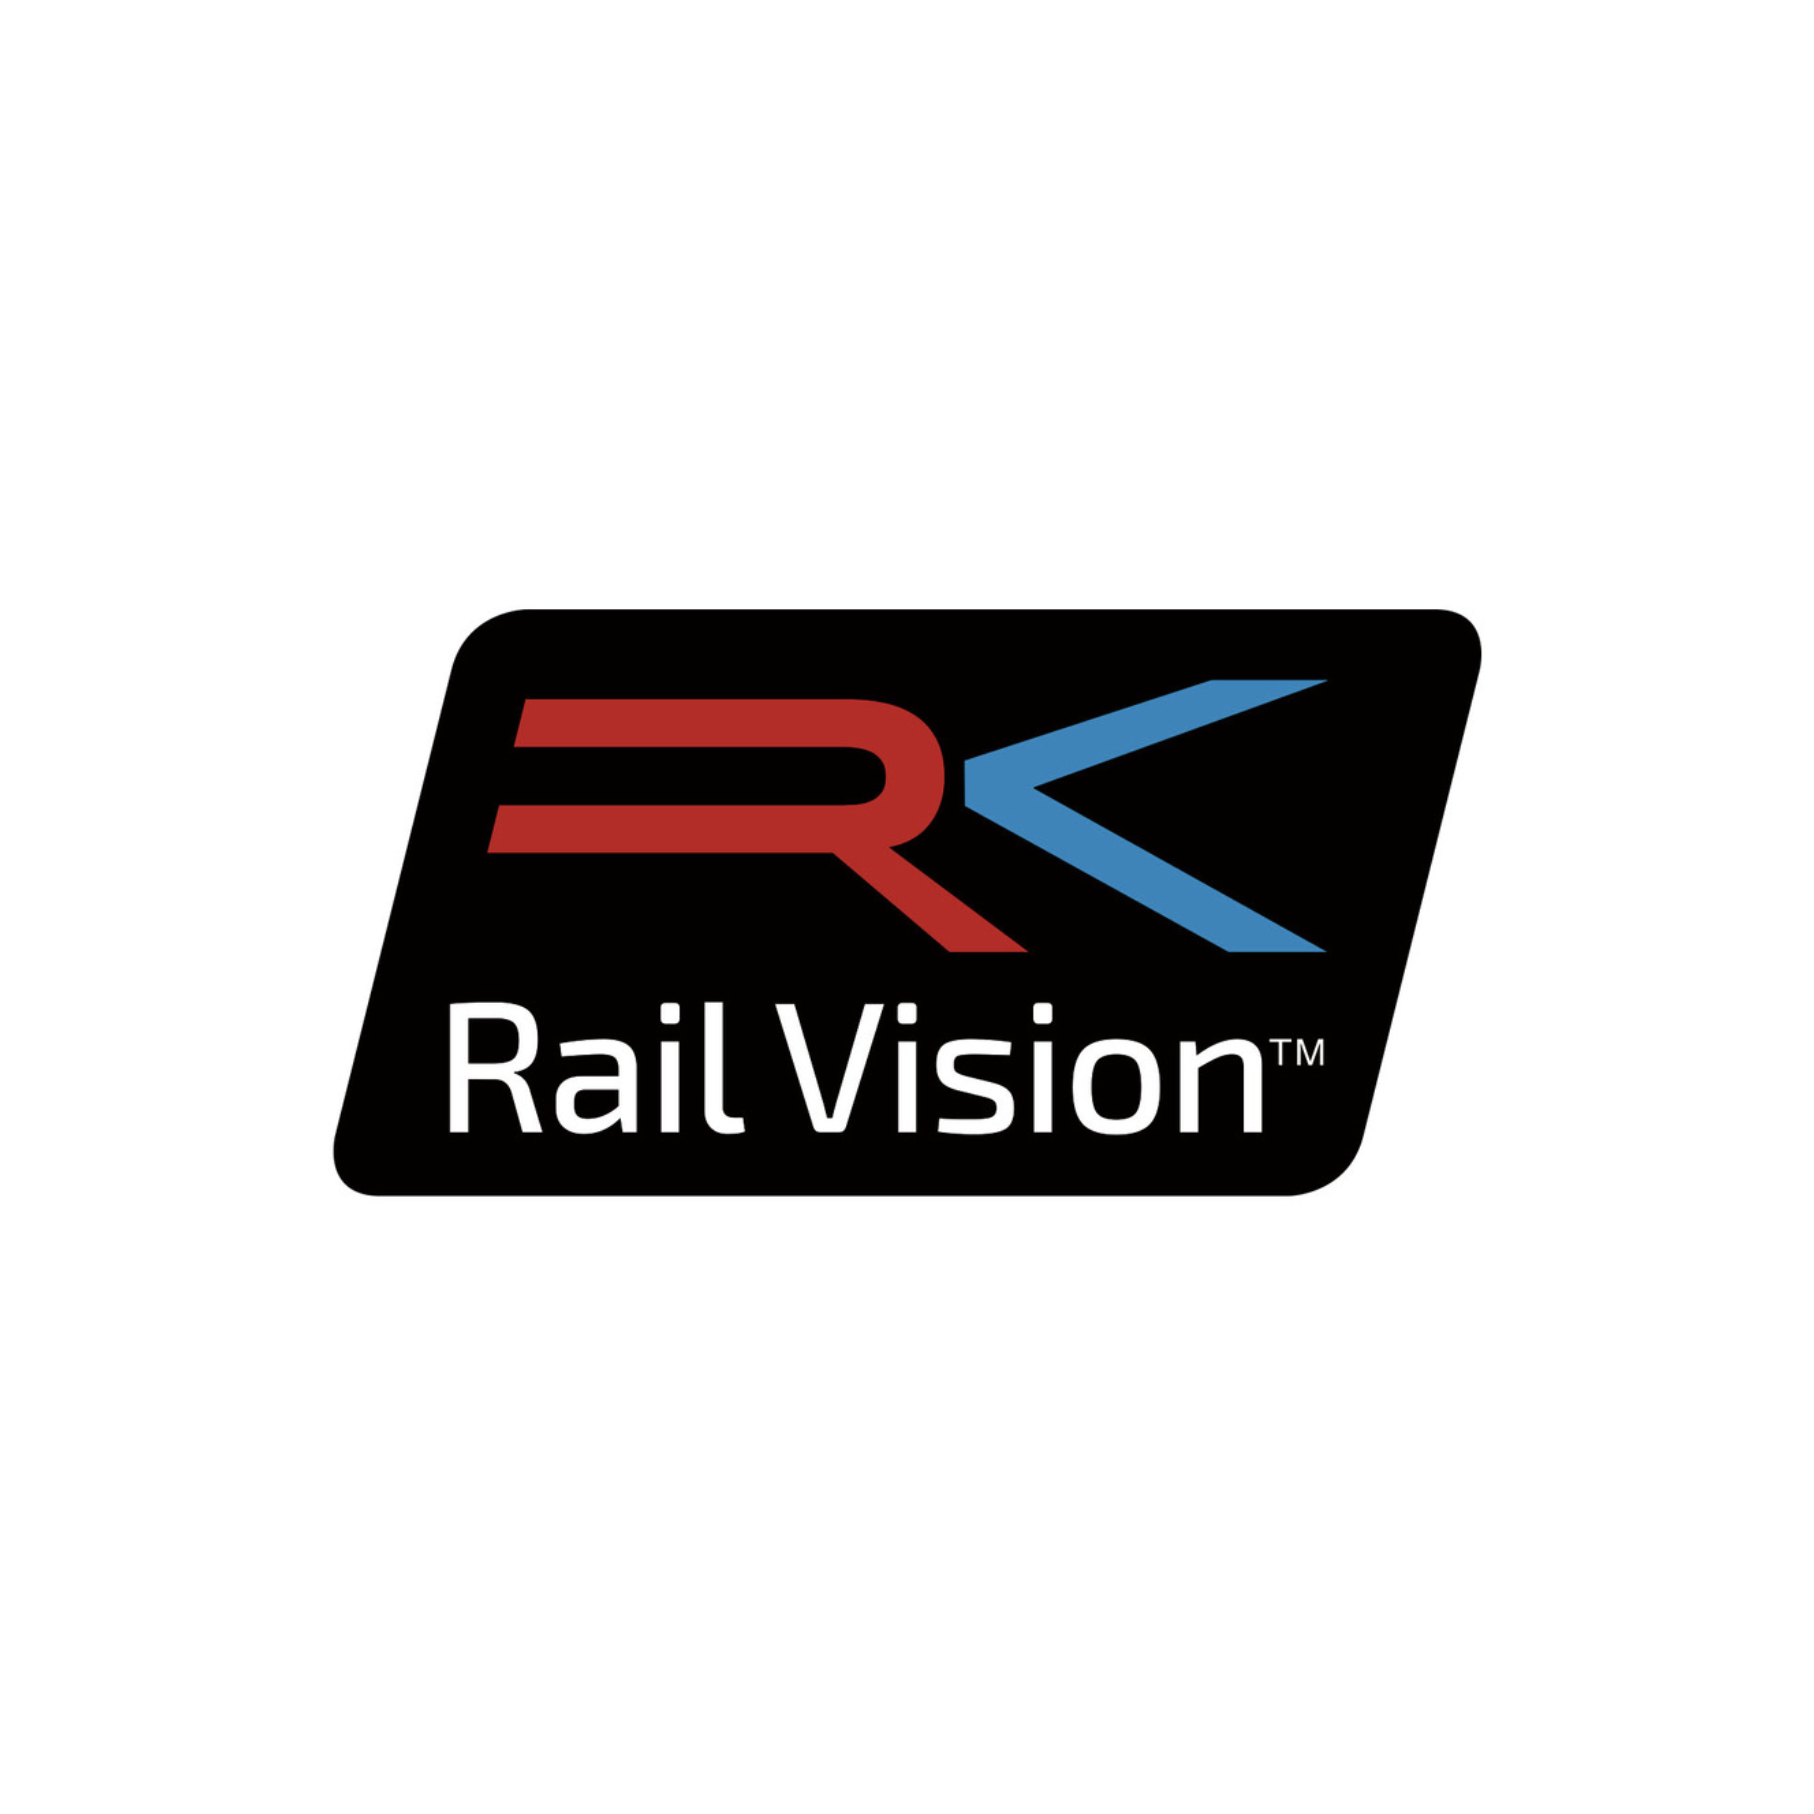 About Rail Vision